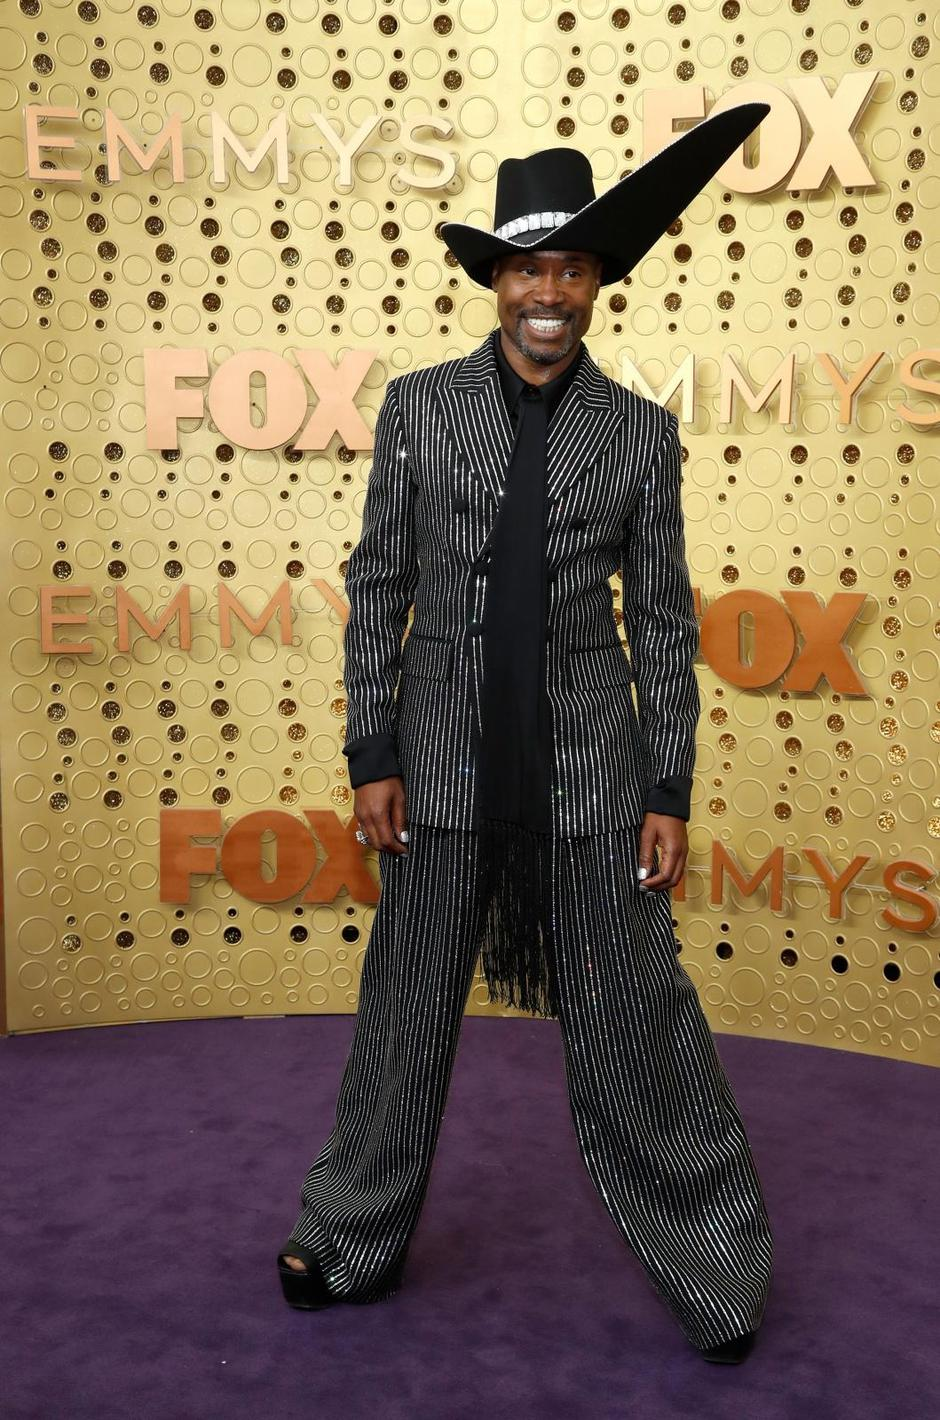 71st Primetime Emmy Awards - Arrivals – Los Angeles, California, U.S., September 22, 2019 - Billy Porter | Autor: MARIO ANZUONI/REUTERS/PIXSELL/REUTERS/PIXSELL